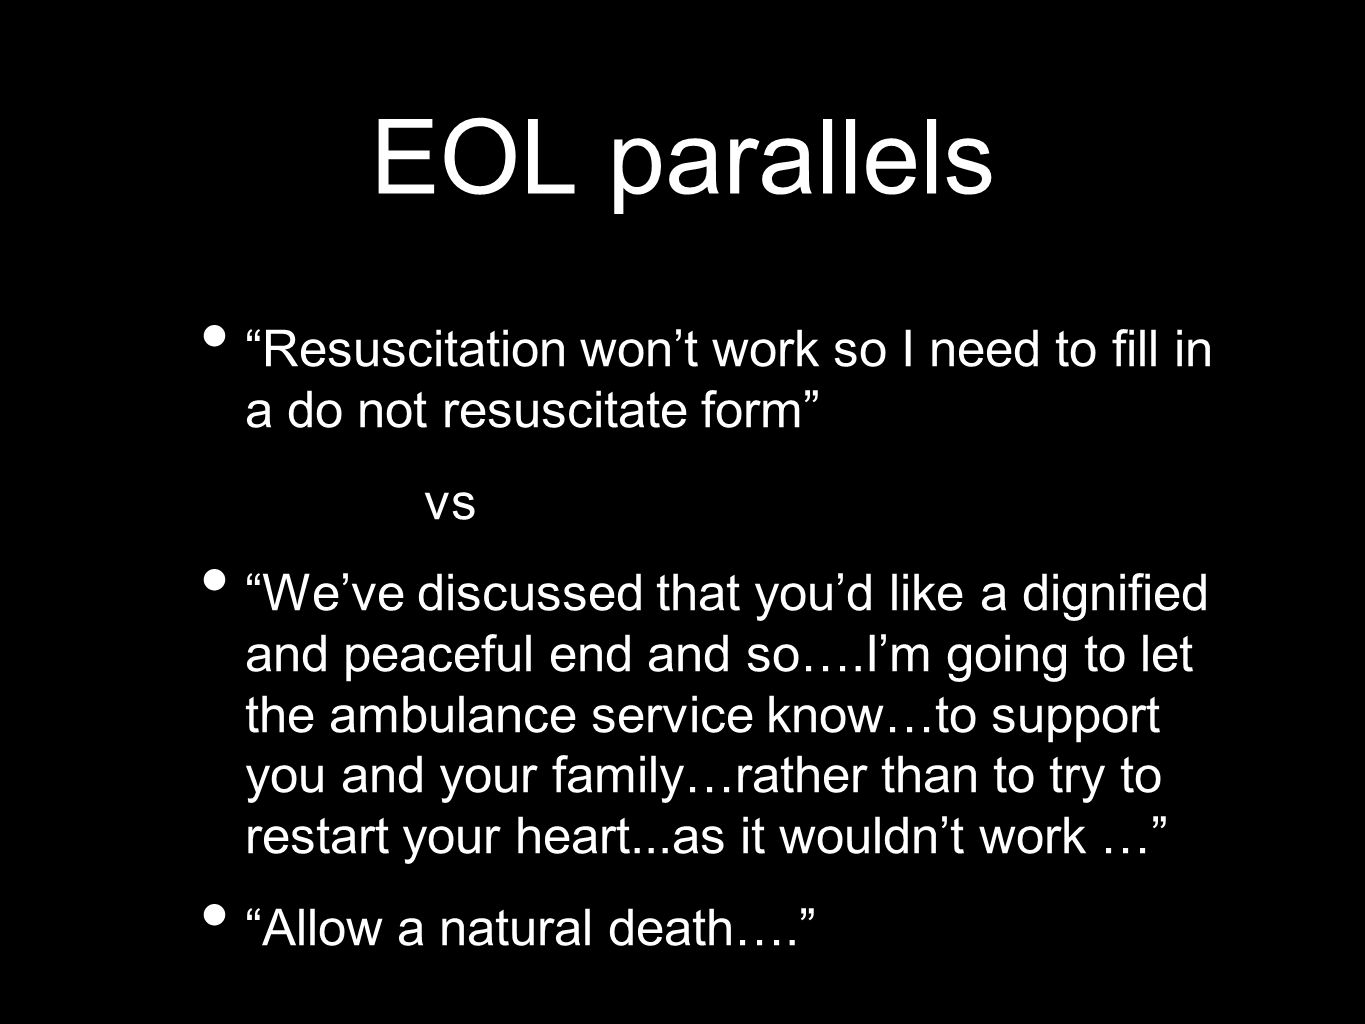 EOL parallels Resuscitation won't work so I need to fill in a do not resuscitate form vs We've discussed that you'd like a dignified and peaceful end and so….I'm going to let the ambulance service know…to support you and your family…rather than to try to restart your heart...as it wouldn't work … Allow a natural death….